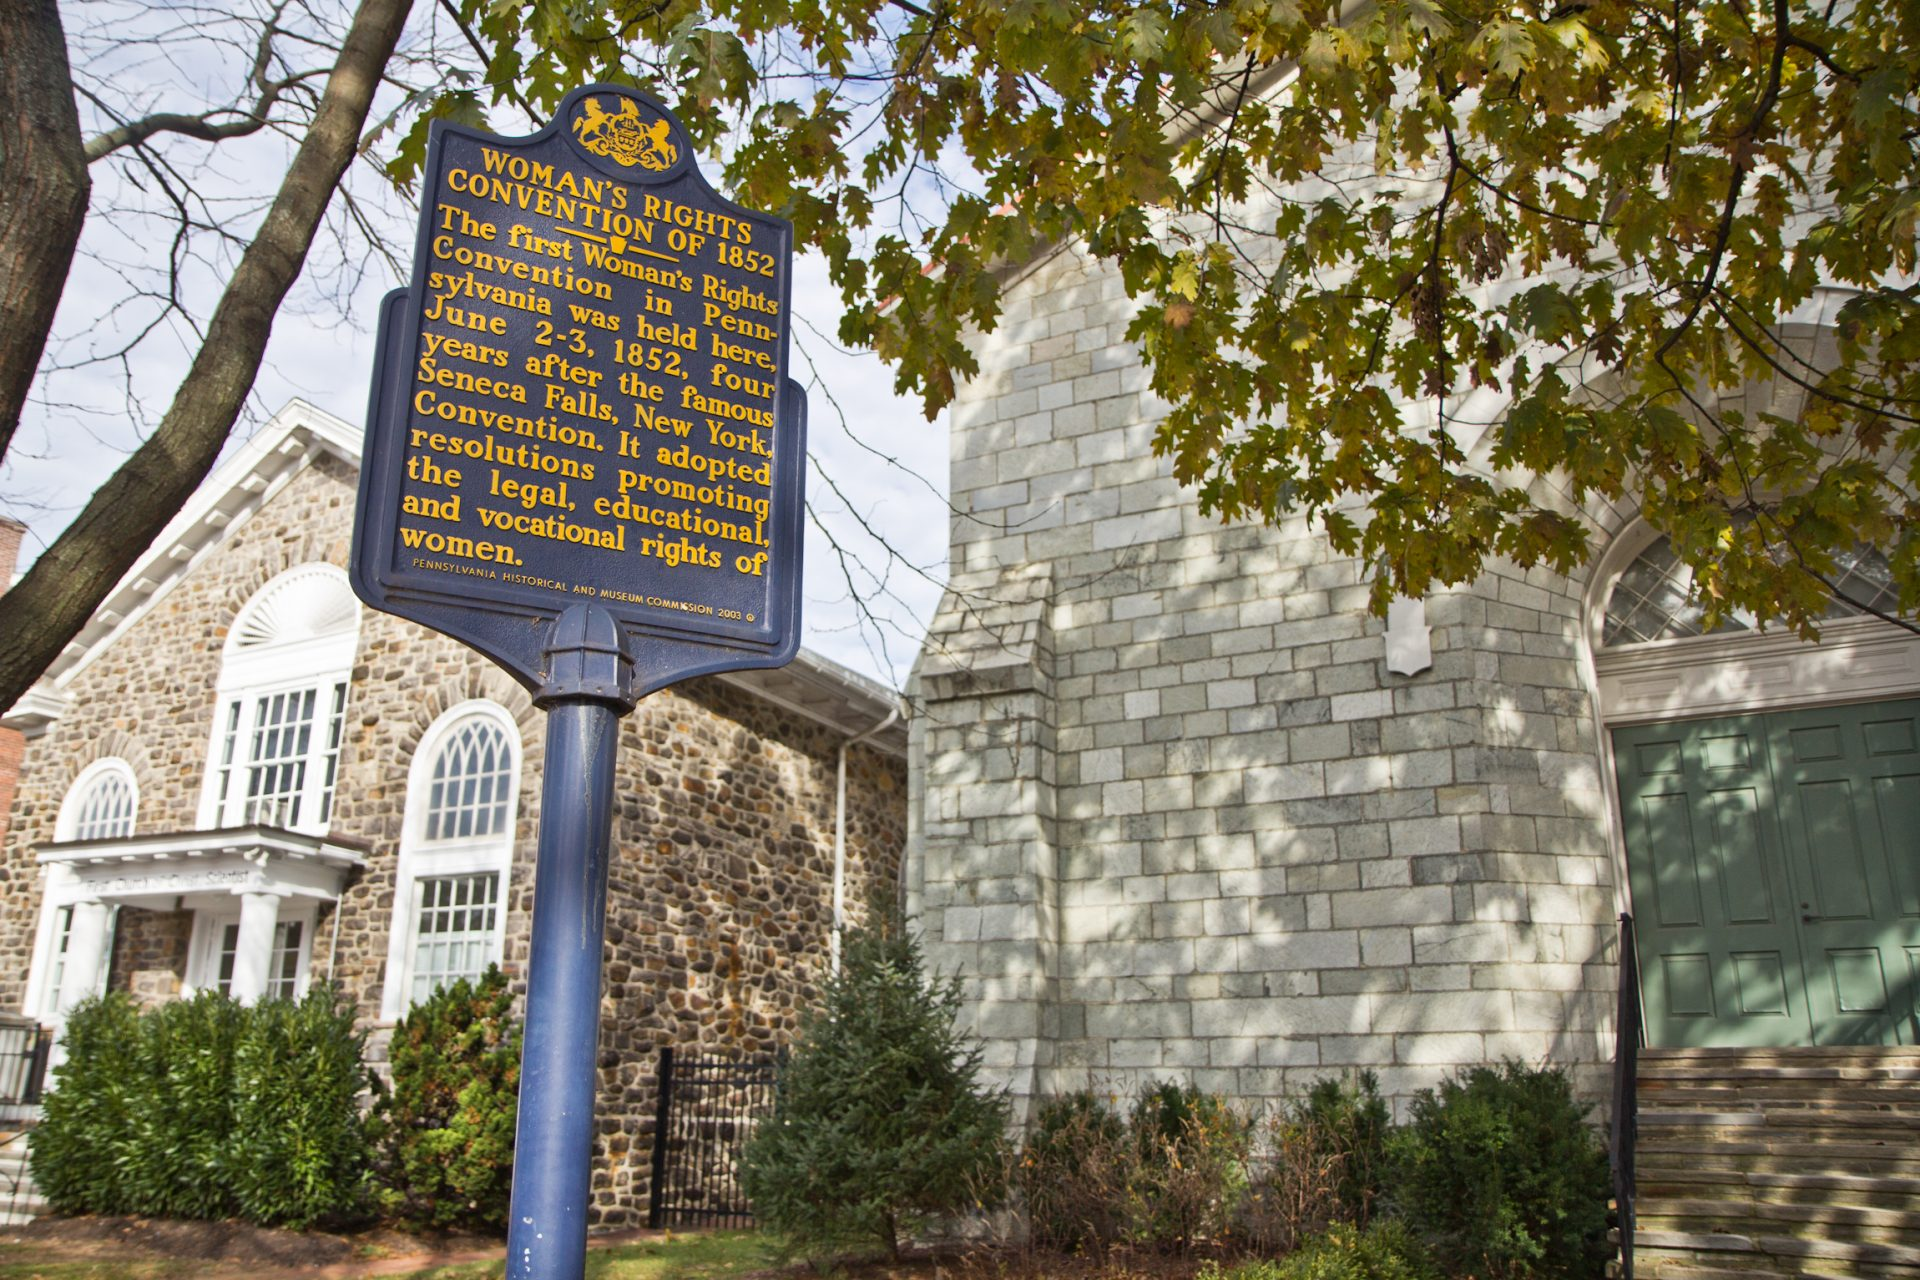 The historical marker of the Woman's Rights Convention of 1852 is located outside the Chester County Historical Society.